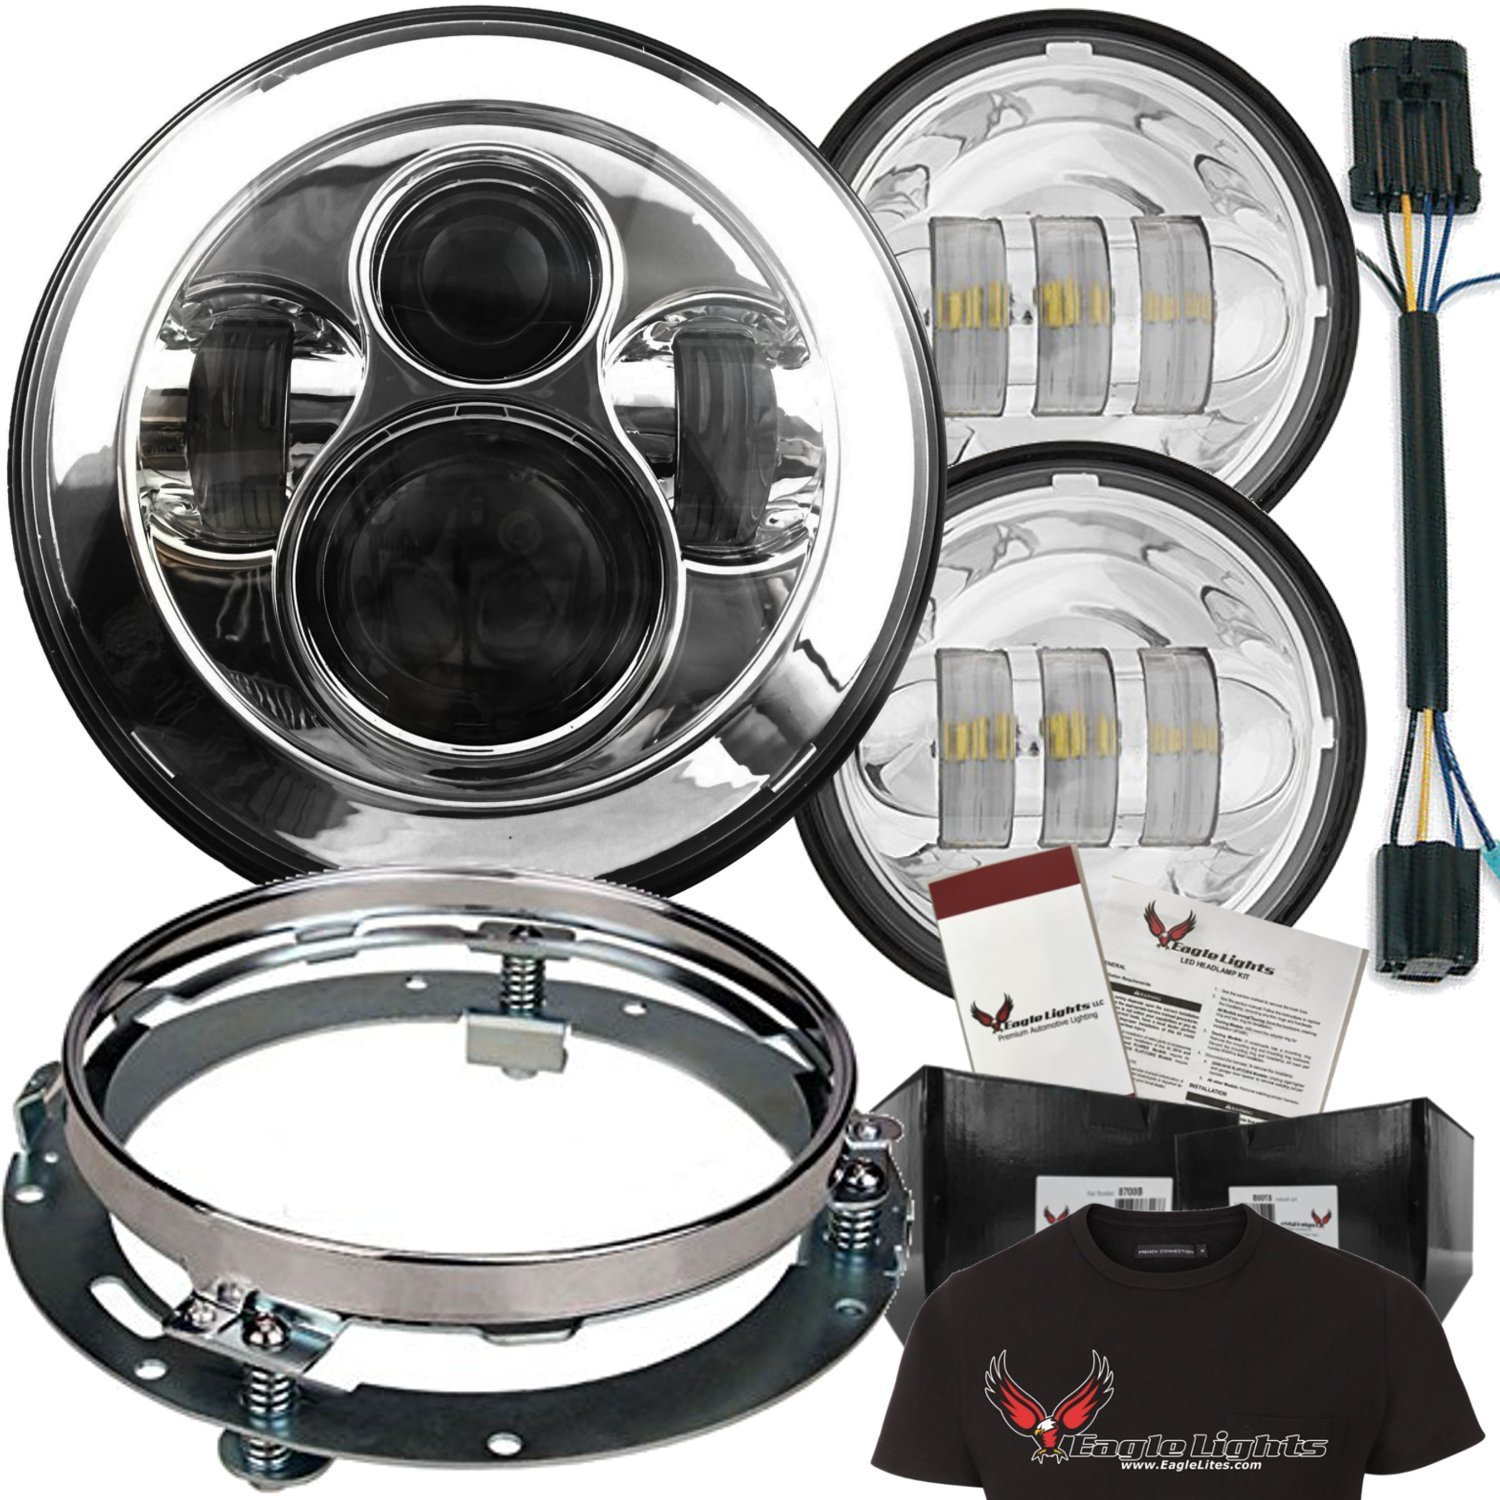 """Eagle Lights 7"""" Round LED Headlight Kit 8700 Daymaker with Matching Passing Lights Adapter Ring, Adapter Plug and Free T-Shirt (Chrome)"""